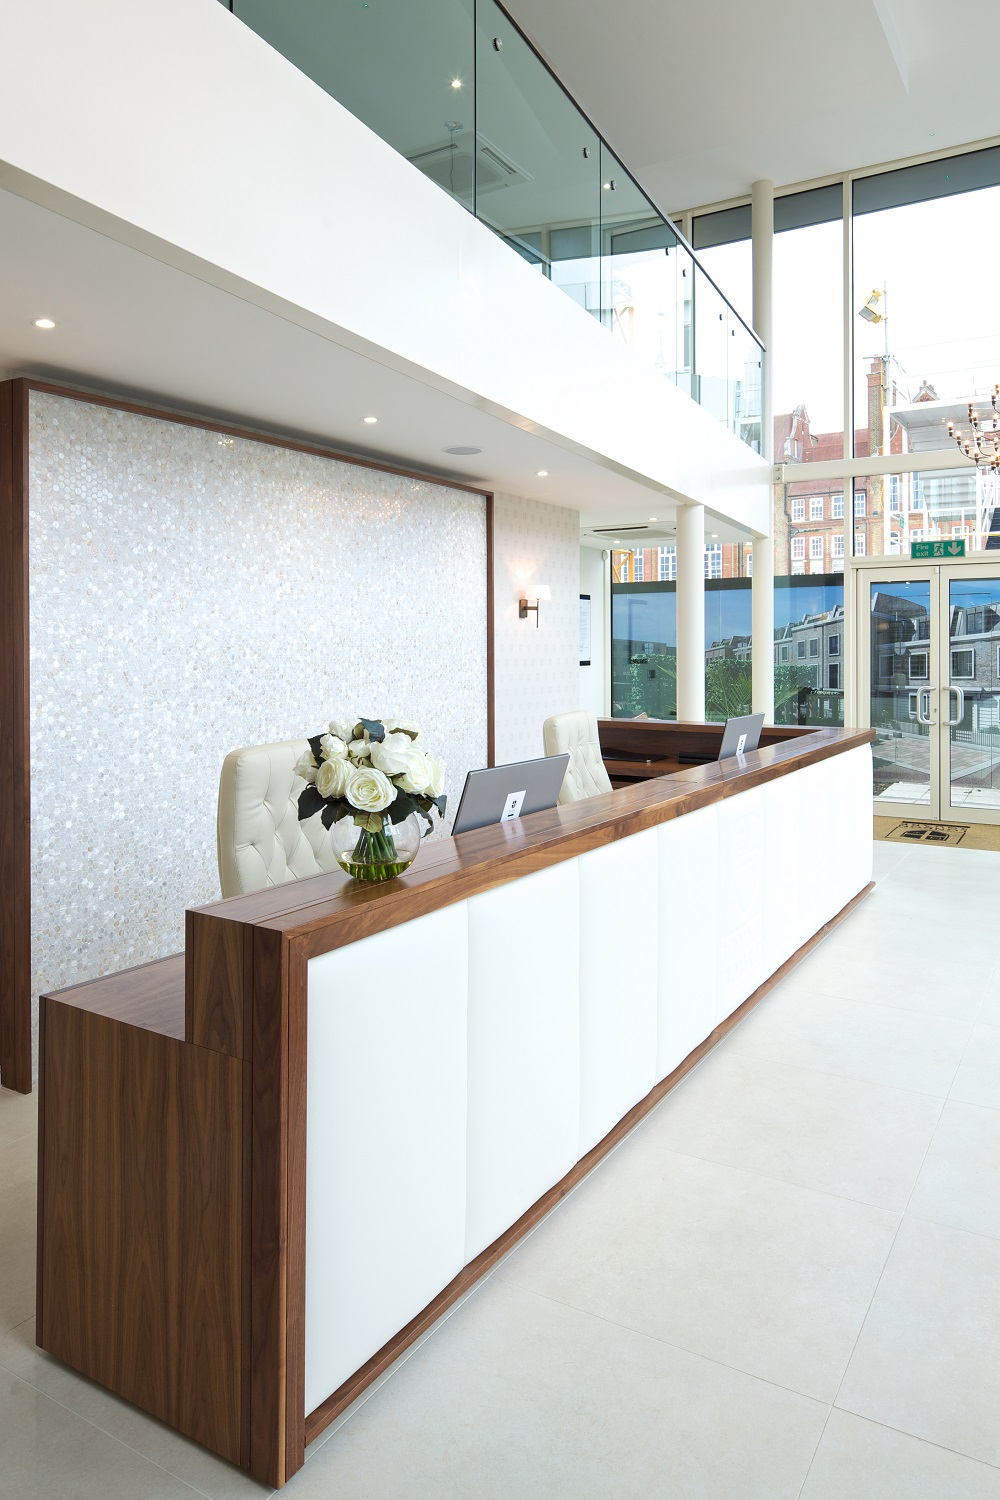 Reception Desk in Walnut with White Leather Upholstered Panels